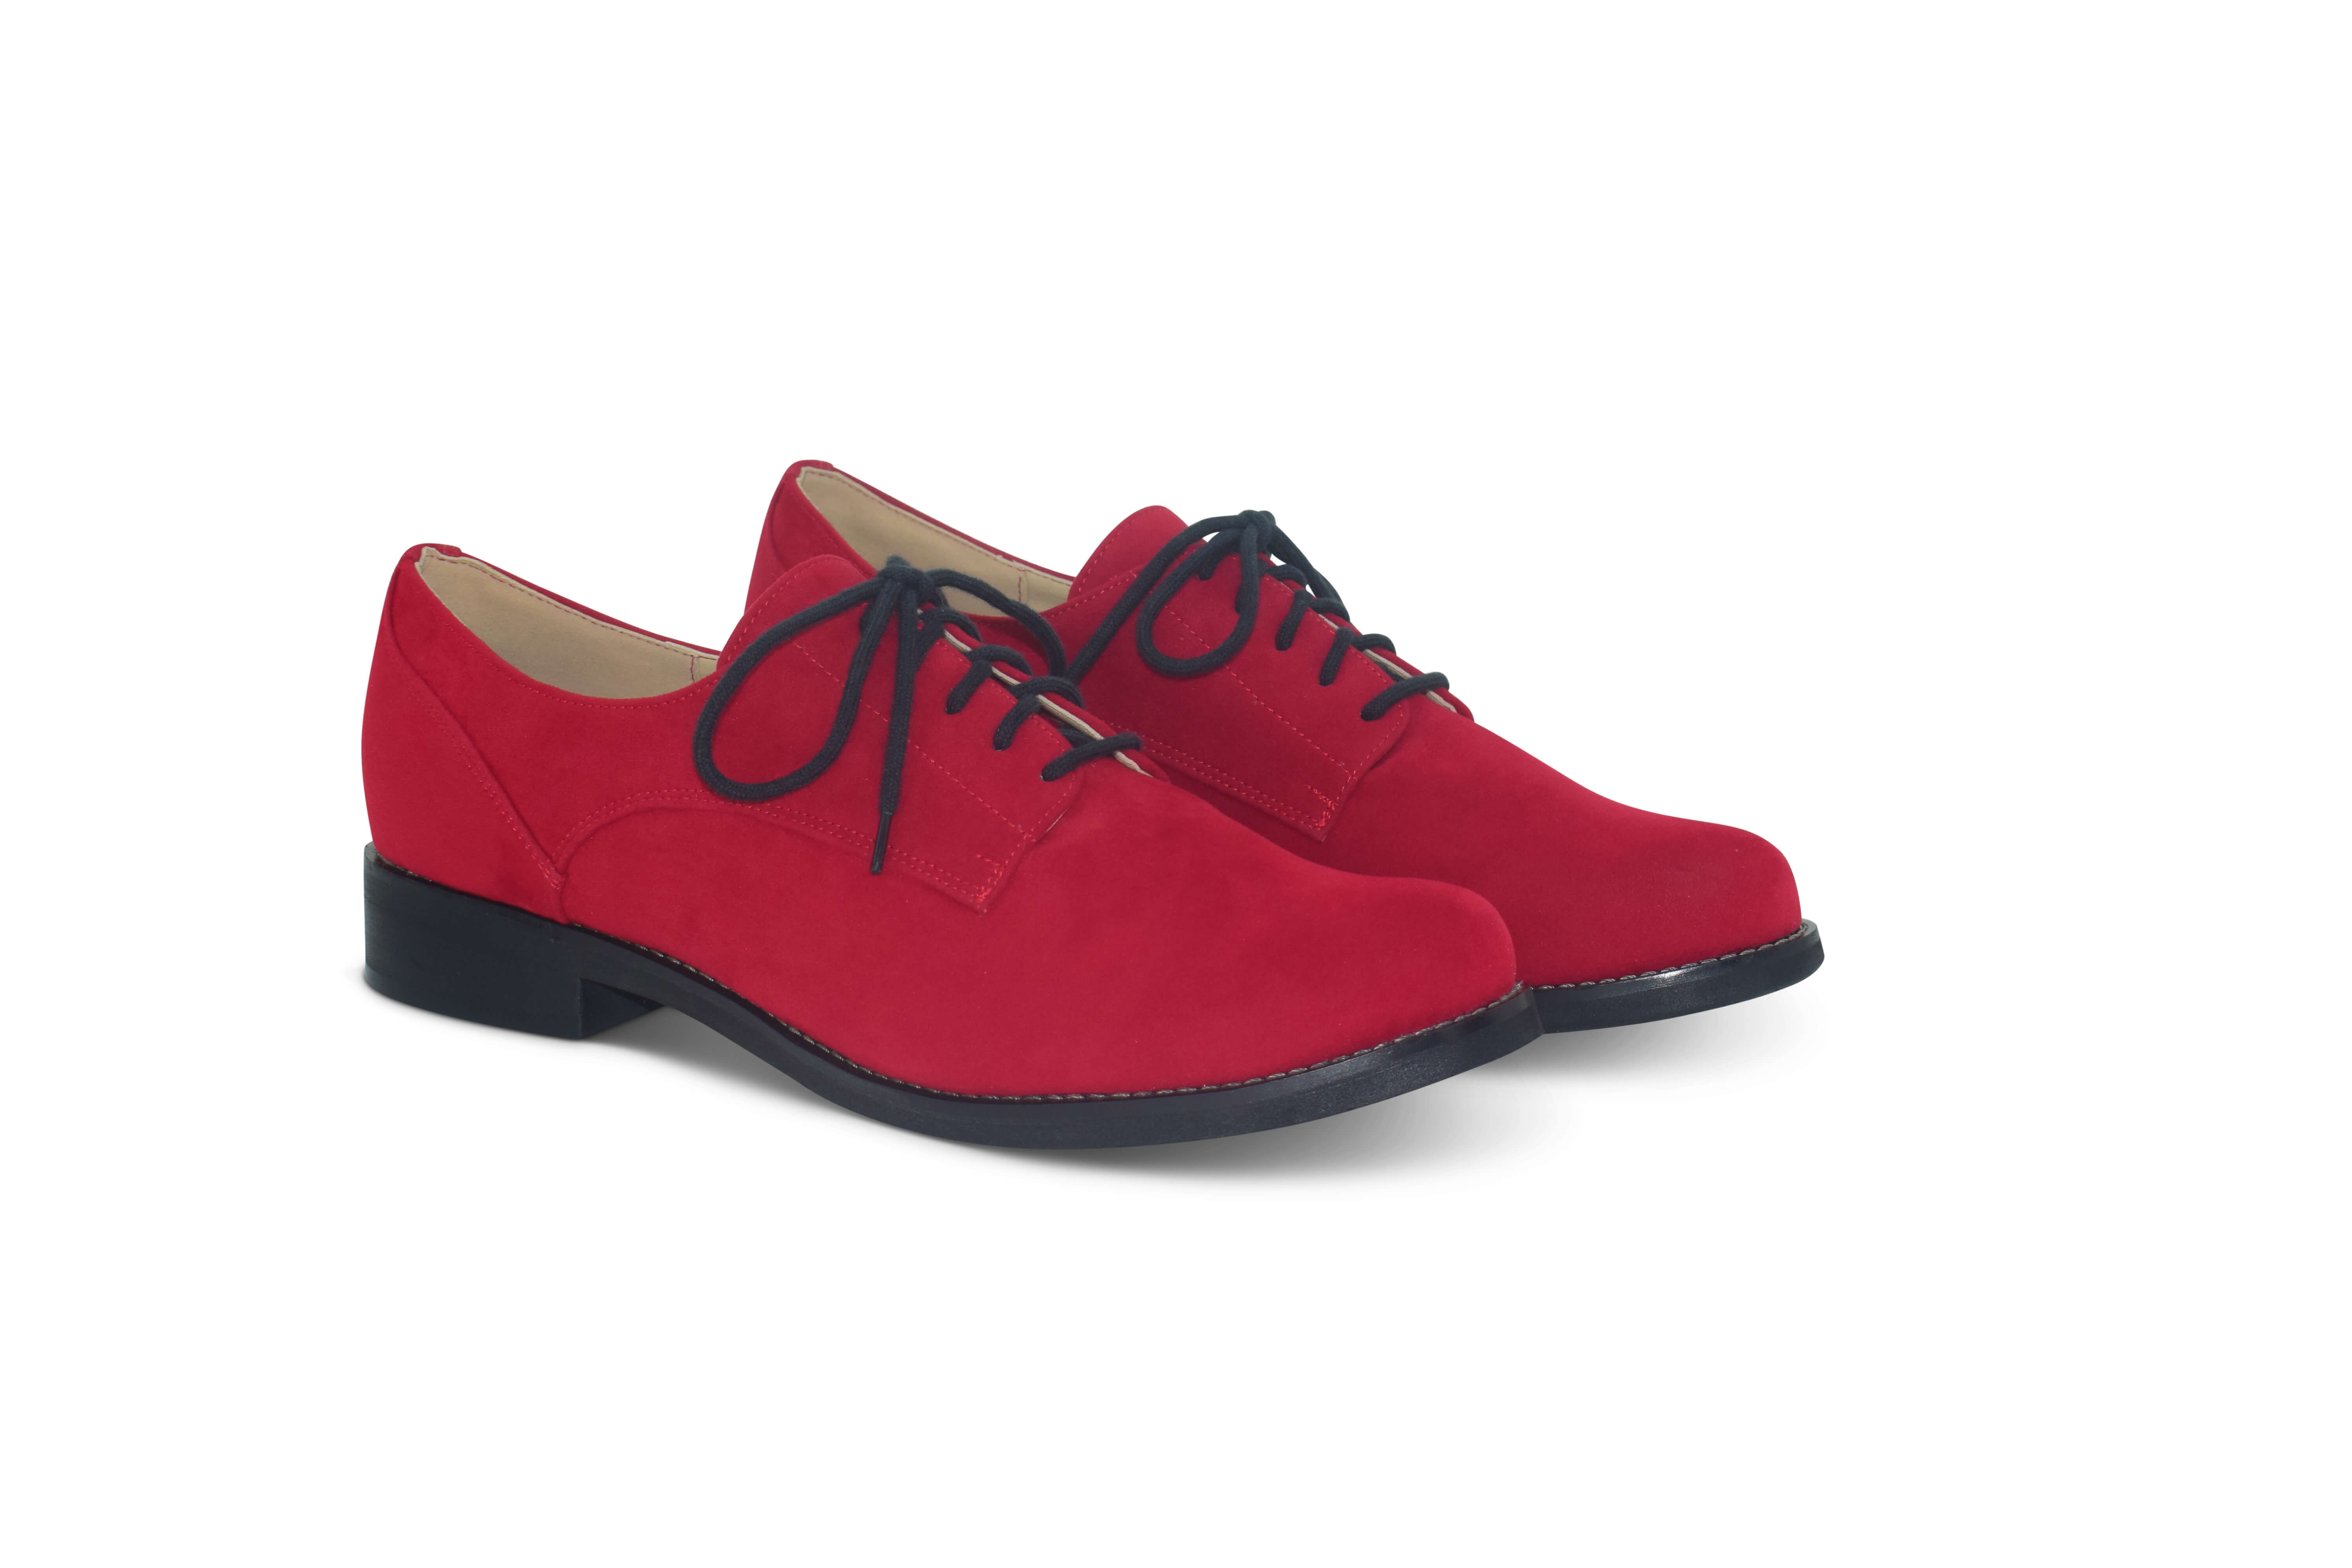 Olga rounded toe Oxfords - red